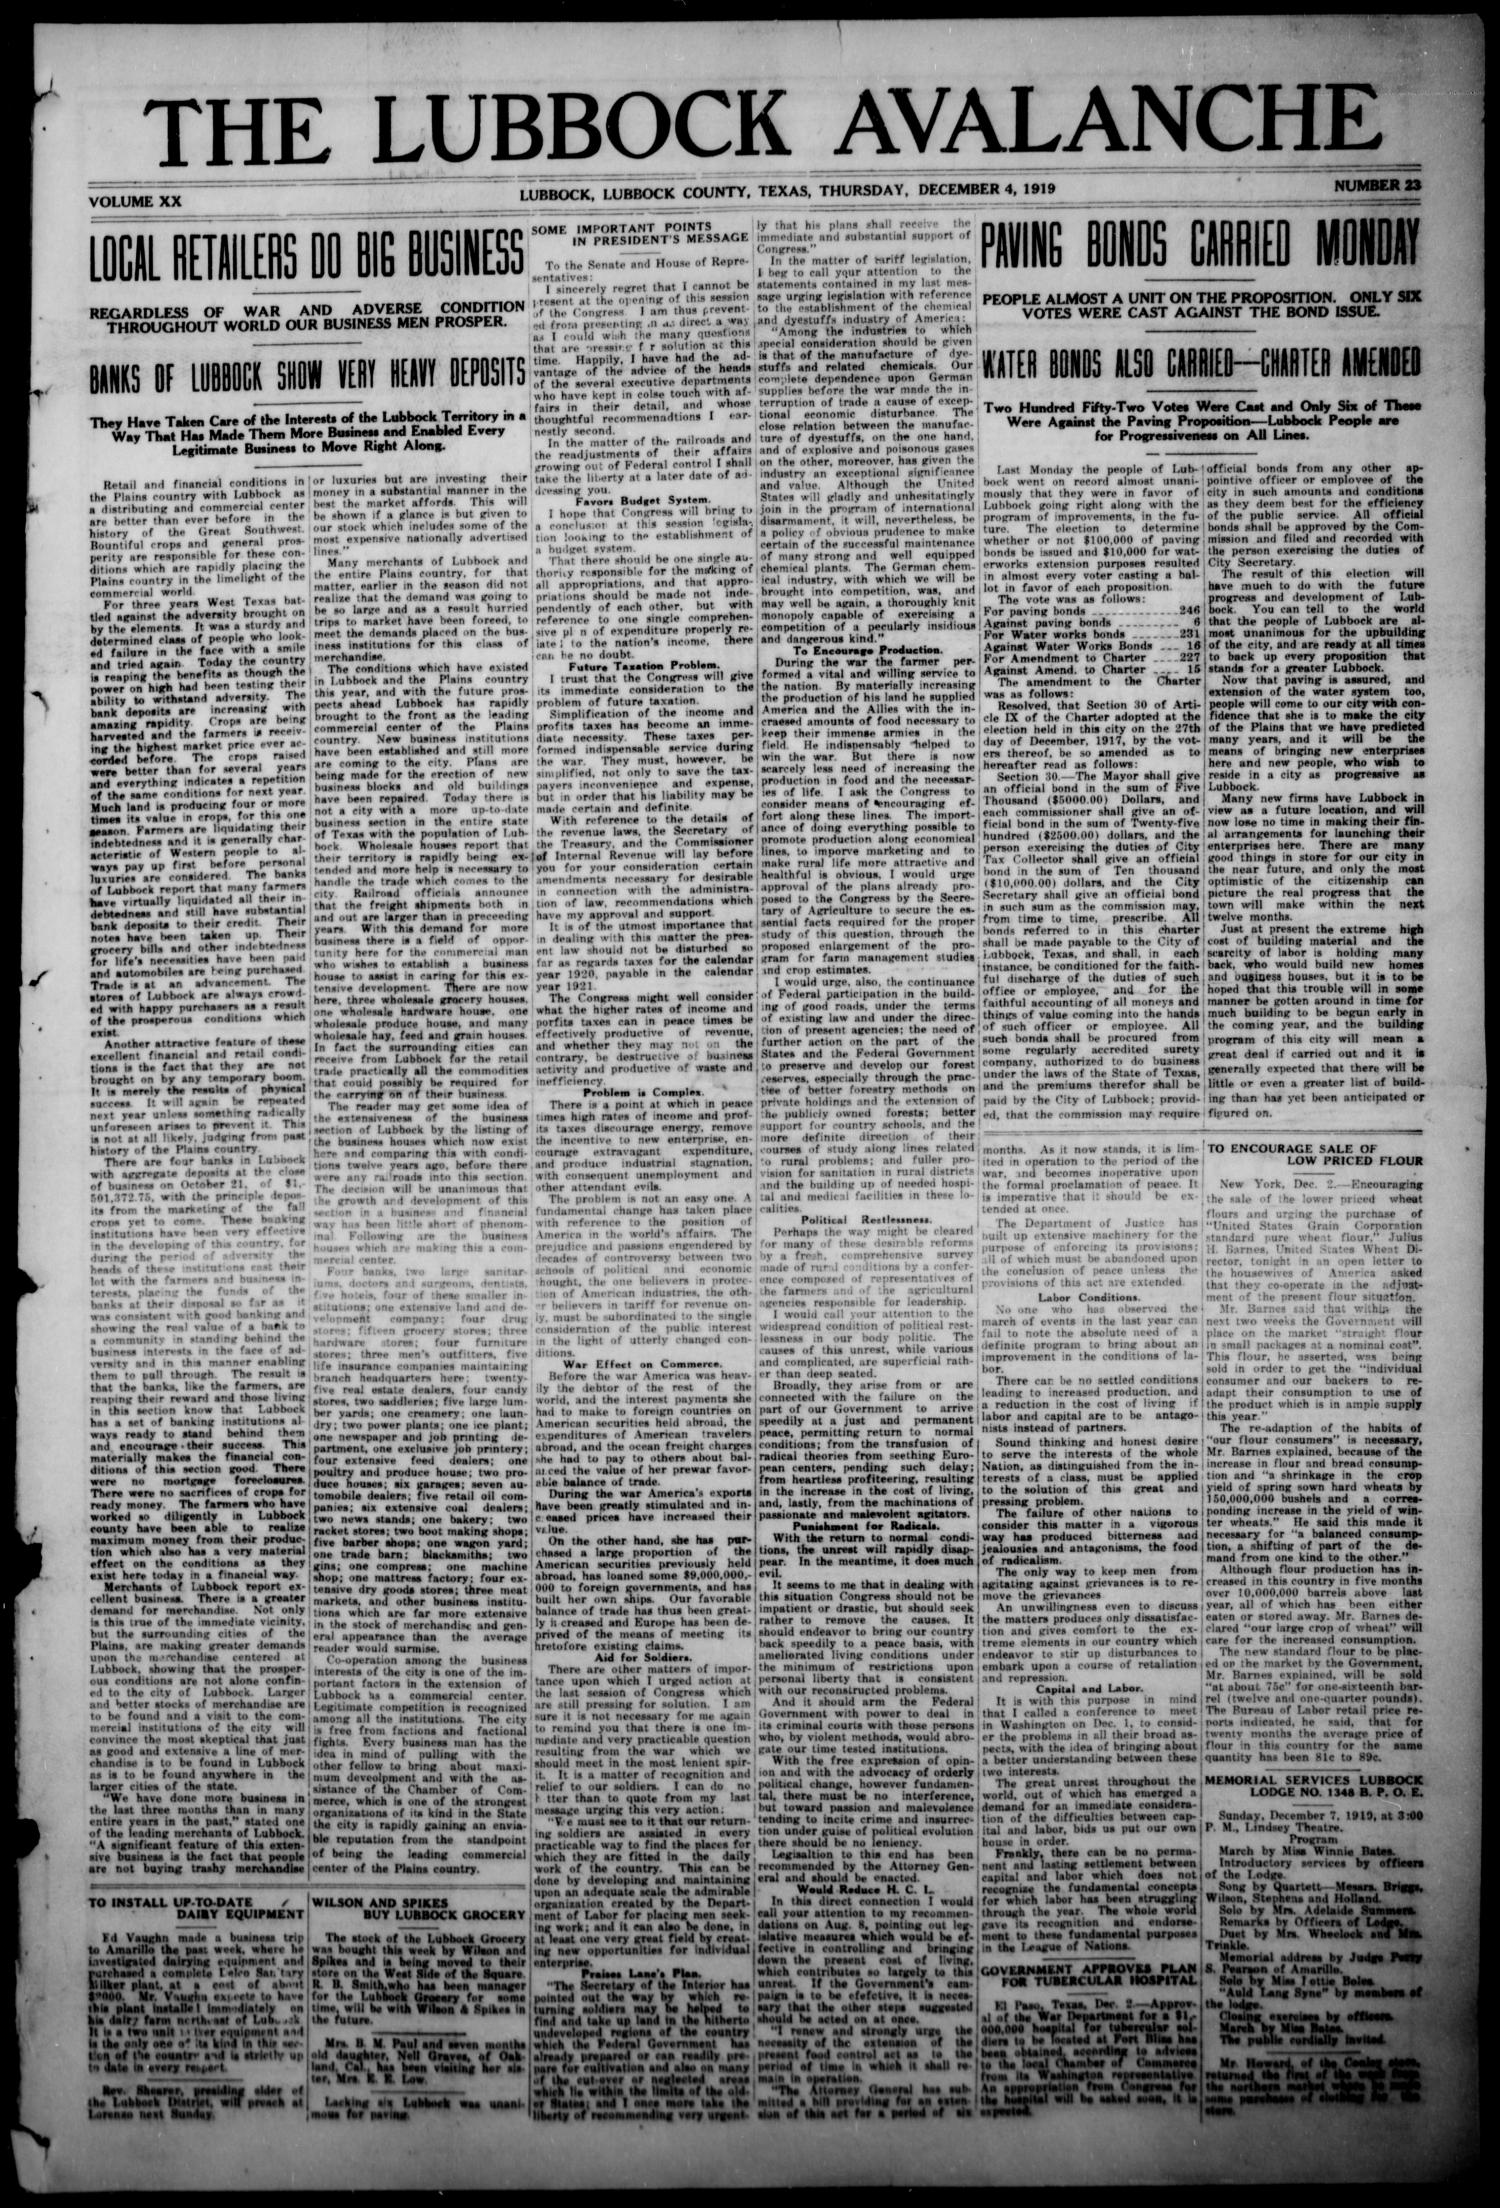 The Lubbock Avalanche. (Lubbock, Texas), Vol. 20, No. 23, Ed. 1 Thursday, December 4, 1919                                                                                                      [Sequence #]: 1 of 24